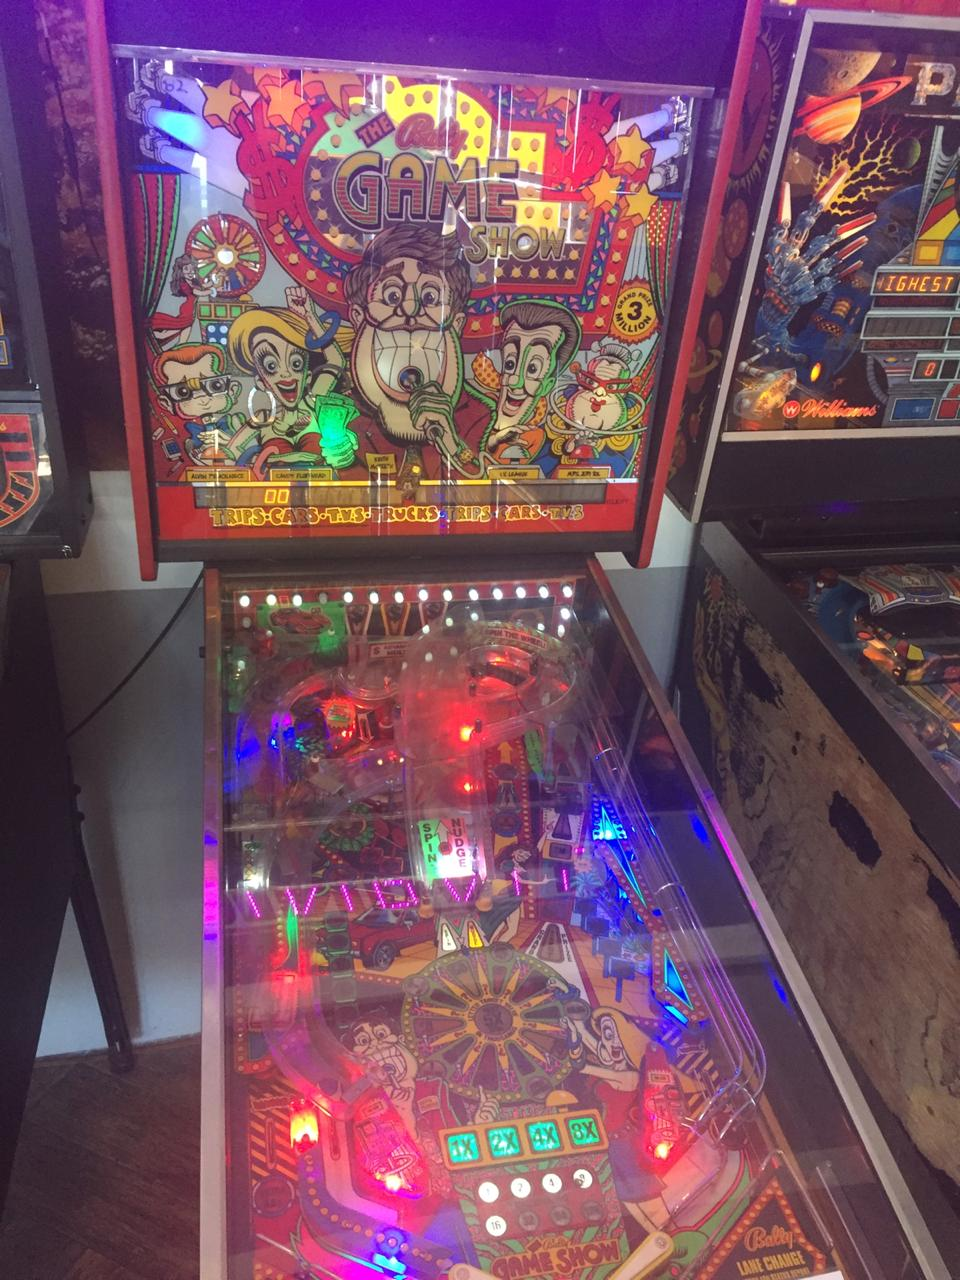 Pop-Up Arcade in Eastgate , come play : Pinball machines, pool tables, air hockey and more